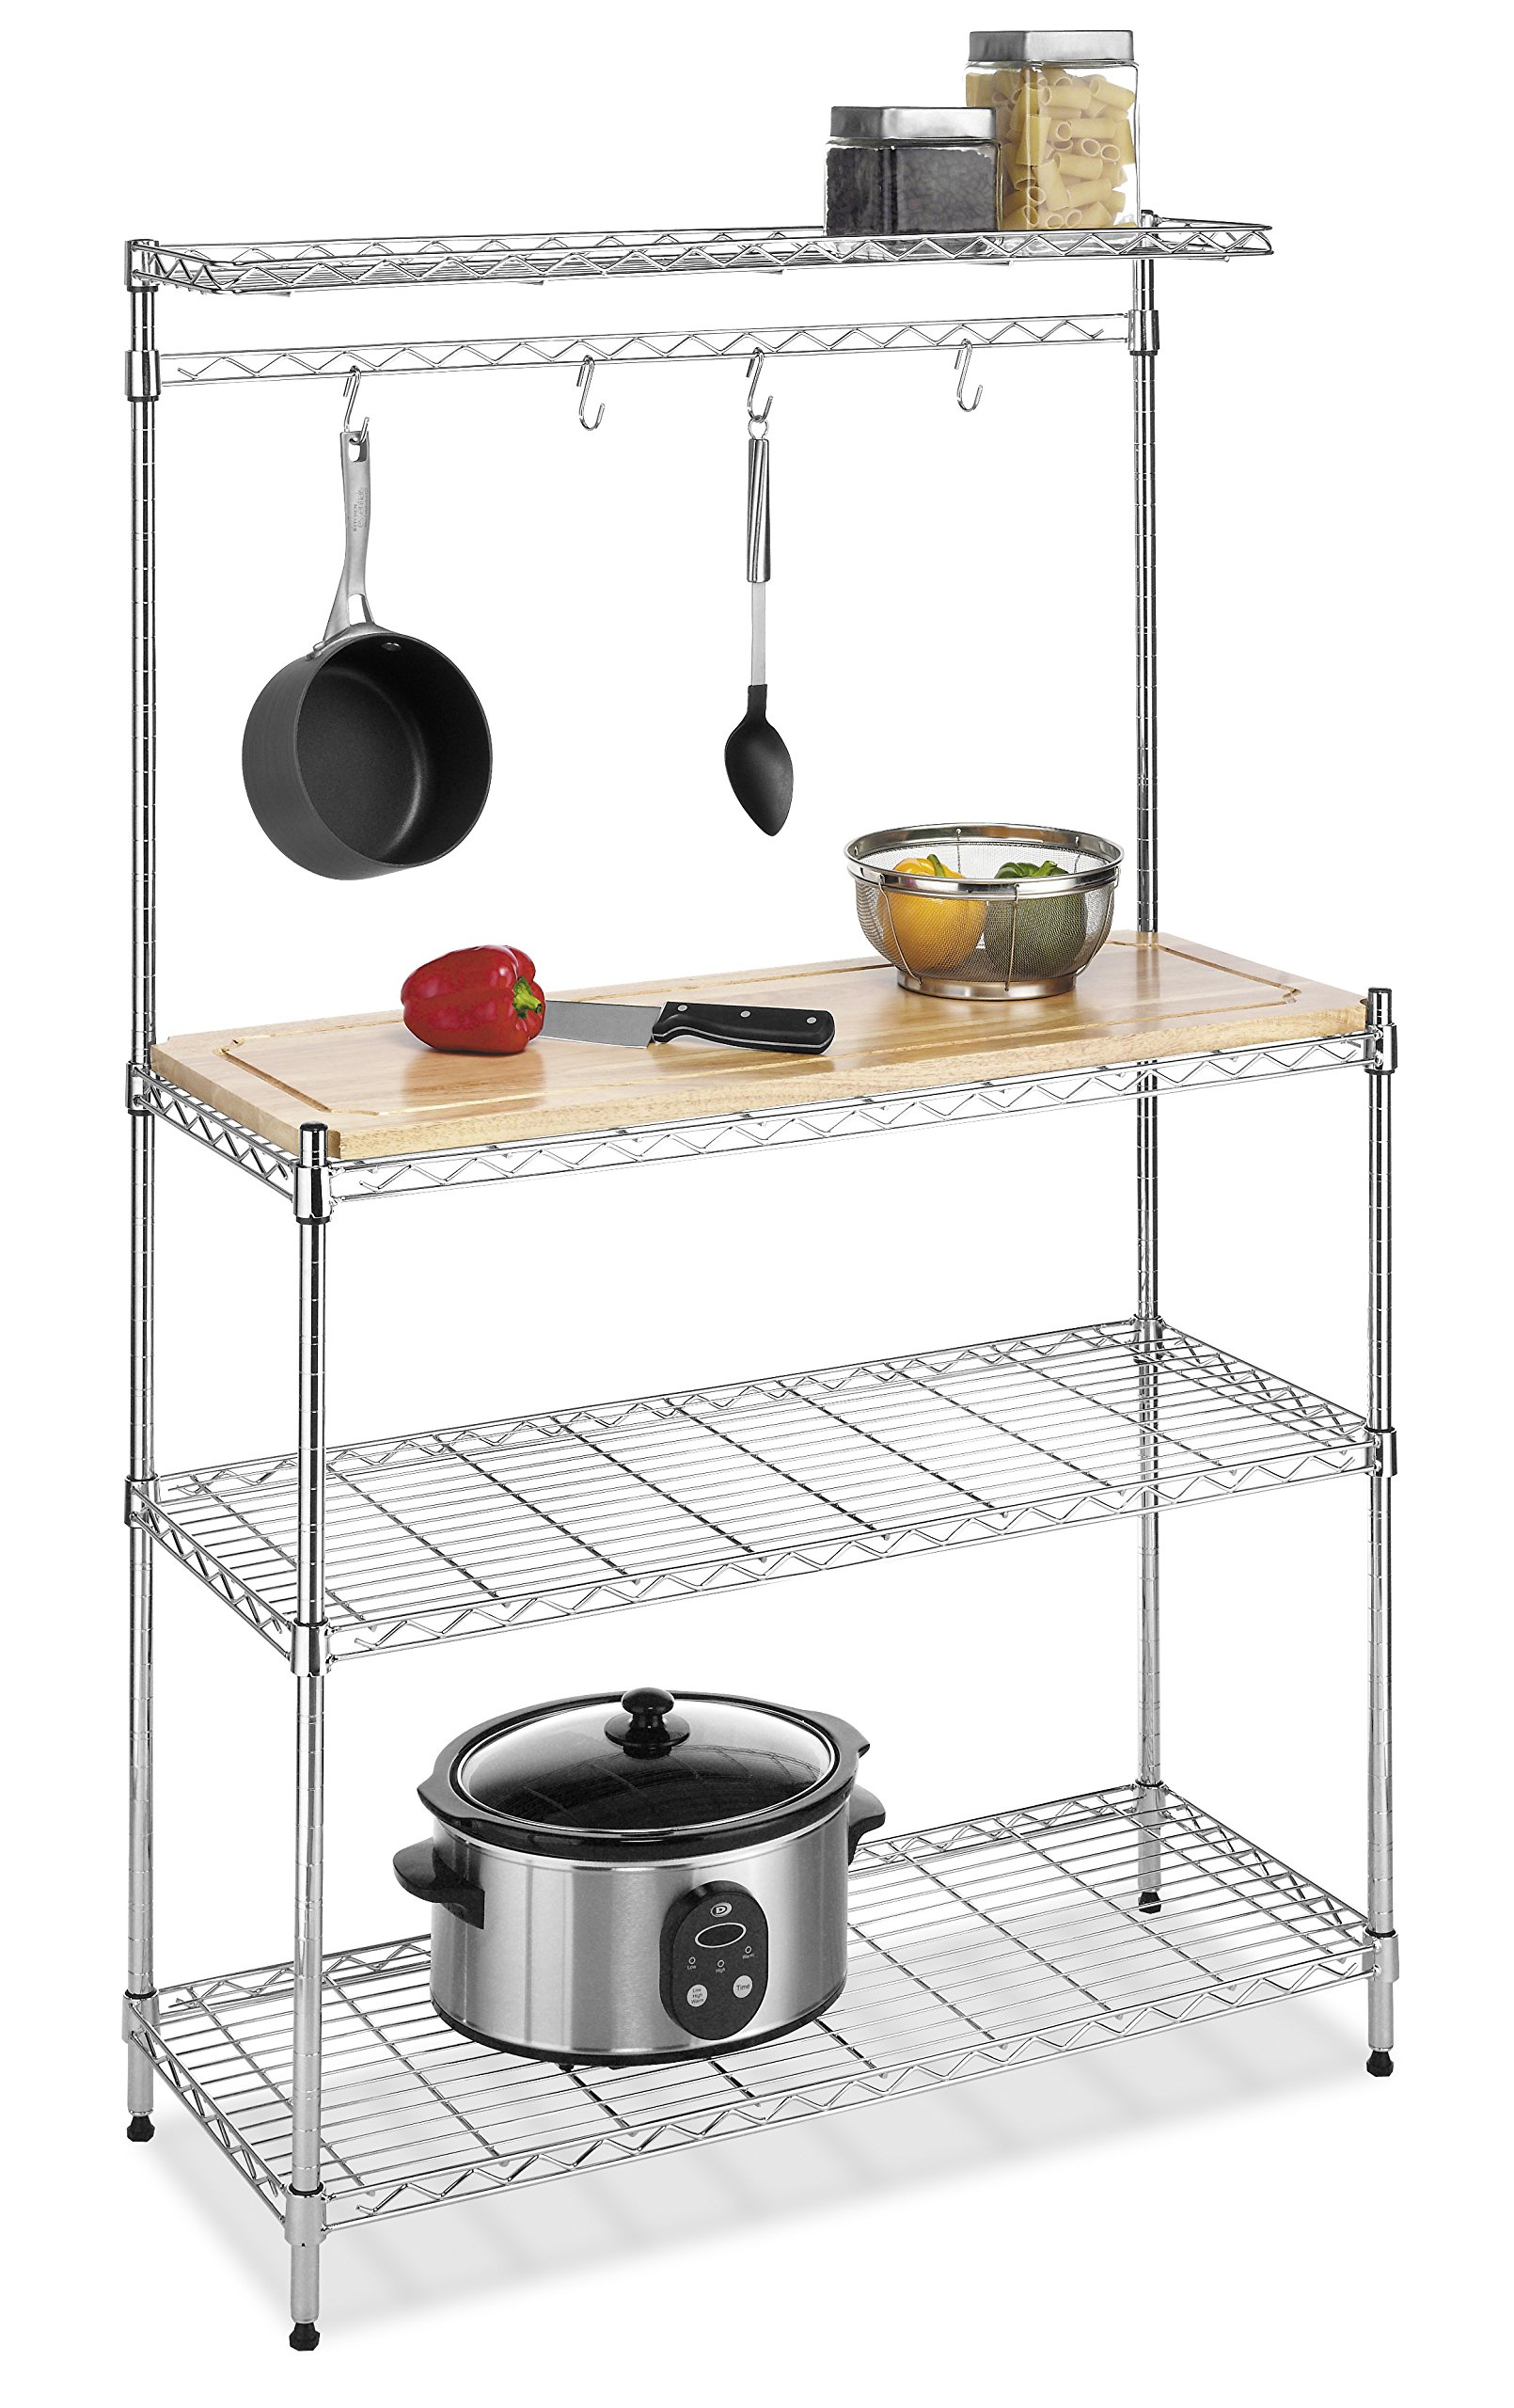 Whitmor Supreme Baker's Rack with Food Safe Removable Wood Cutting Board - Chrome